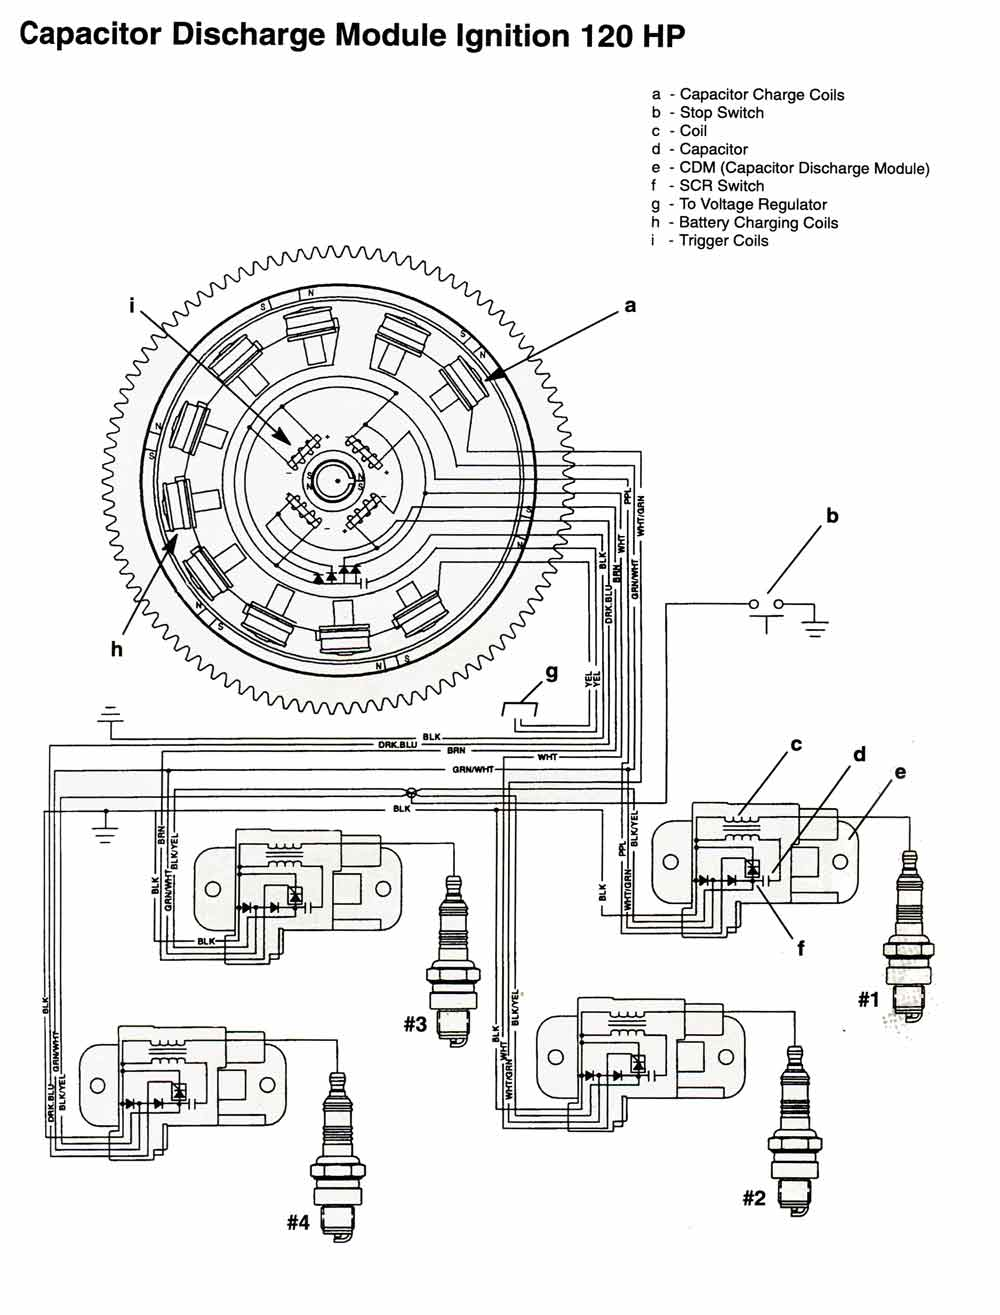 120HP_96_up._CD magneto ignition system wiring diagram circuit and schematics chrysler outboard wiring diagram at bakdesigns.co